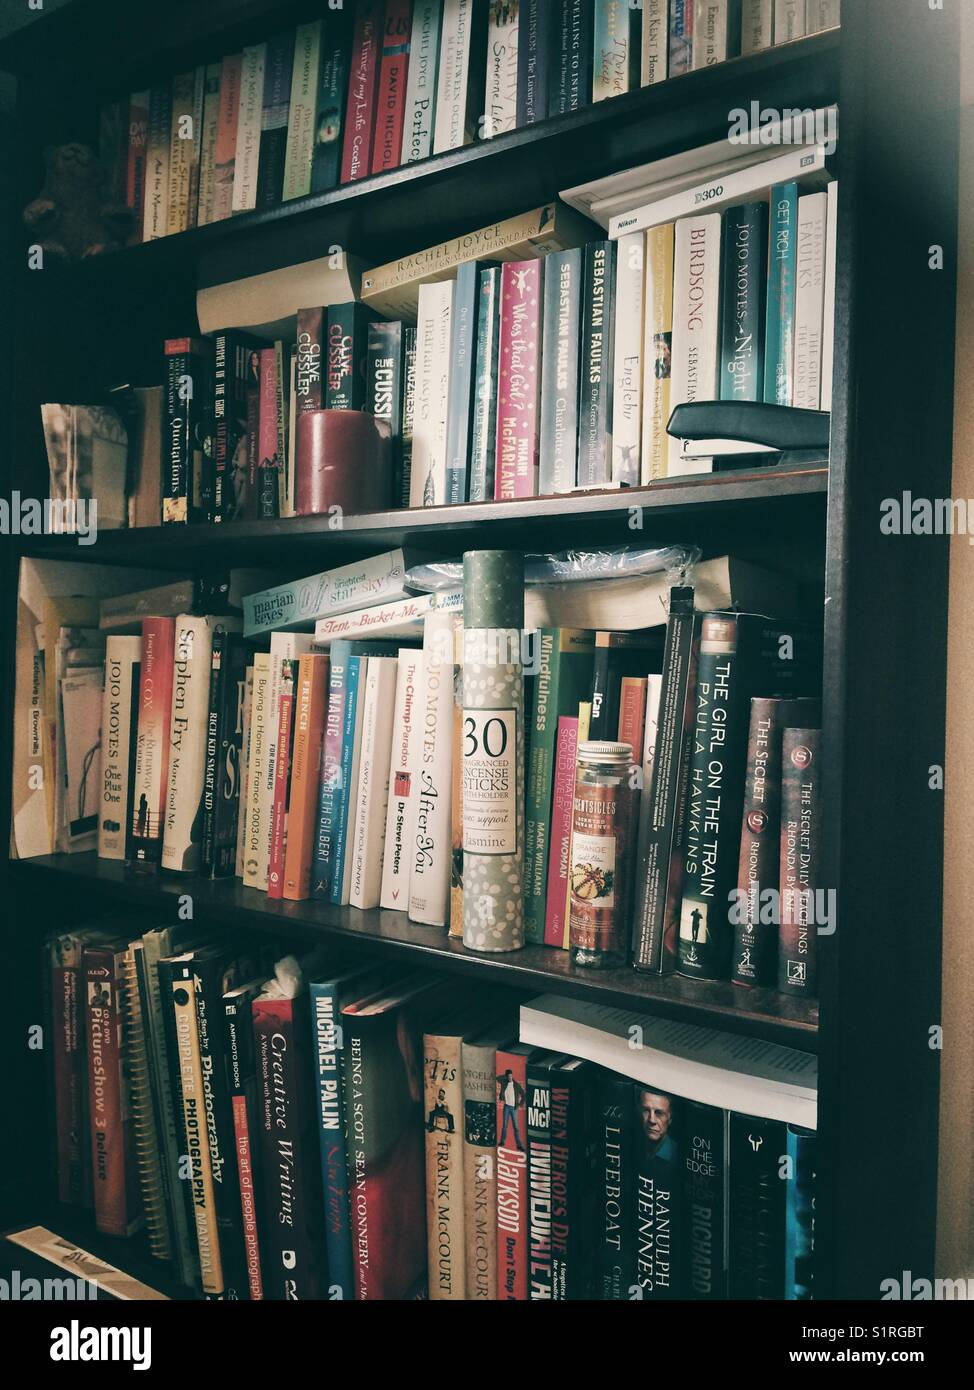 Cluttered book shelves - Stock Image